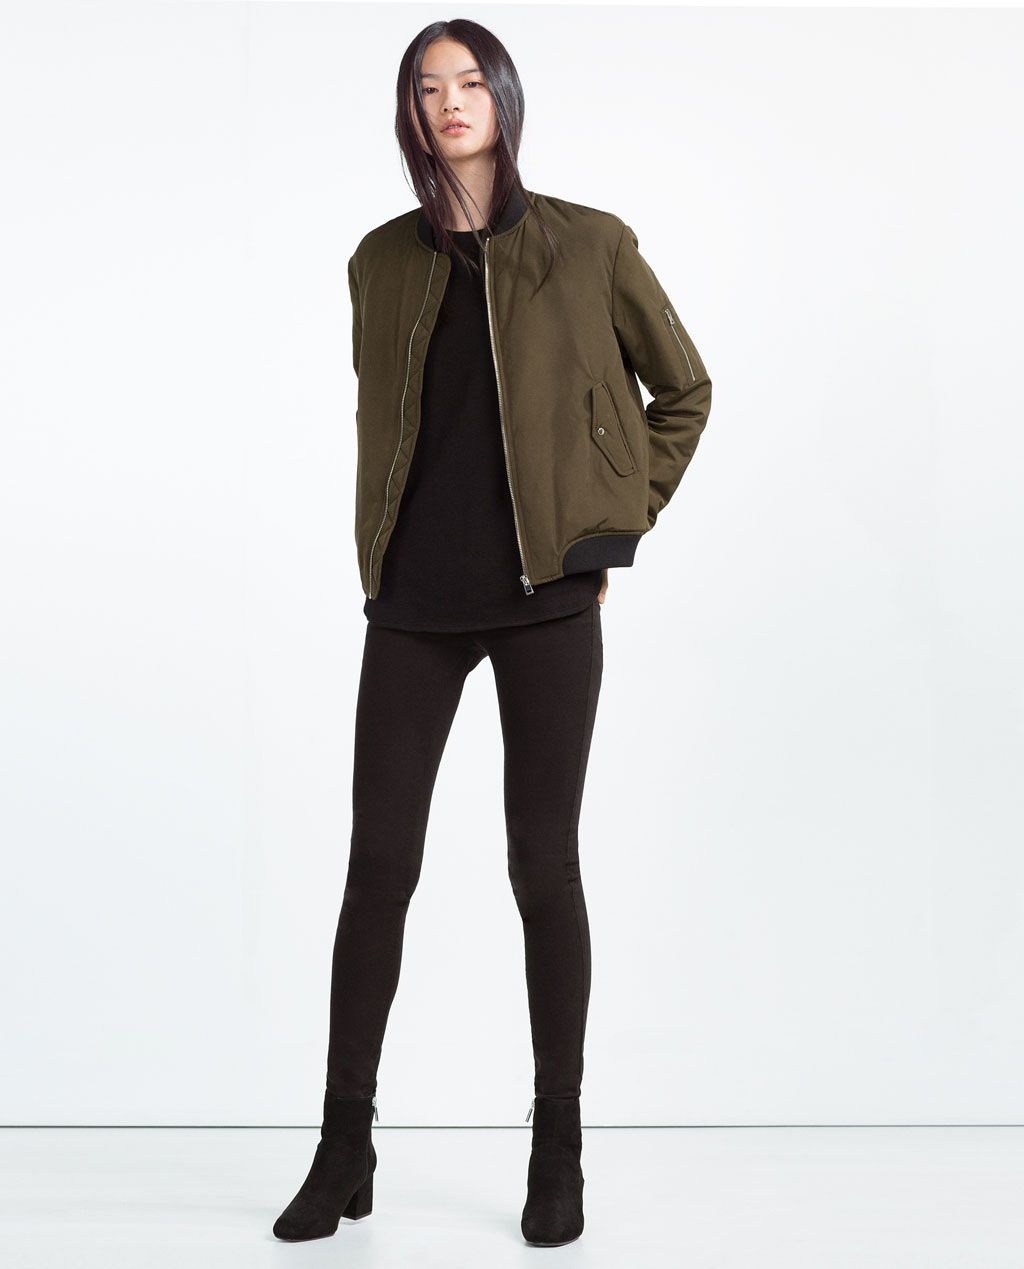 NYLON BOMBER JACKET-NEW THIS WEEK-TRF-COLLECTION SS16 | ZARA United States